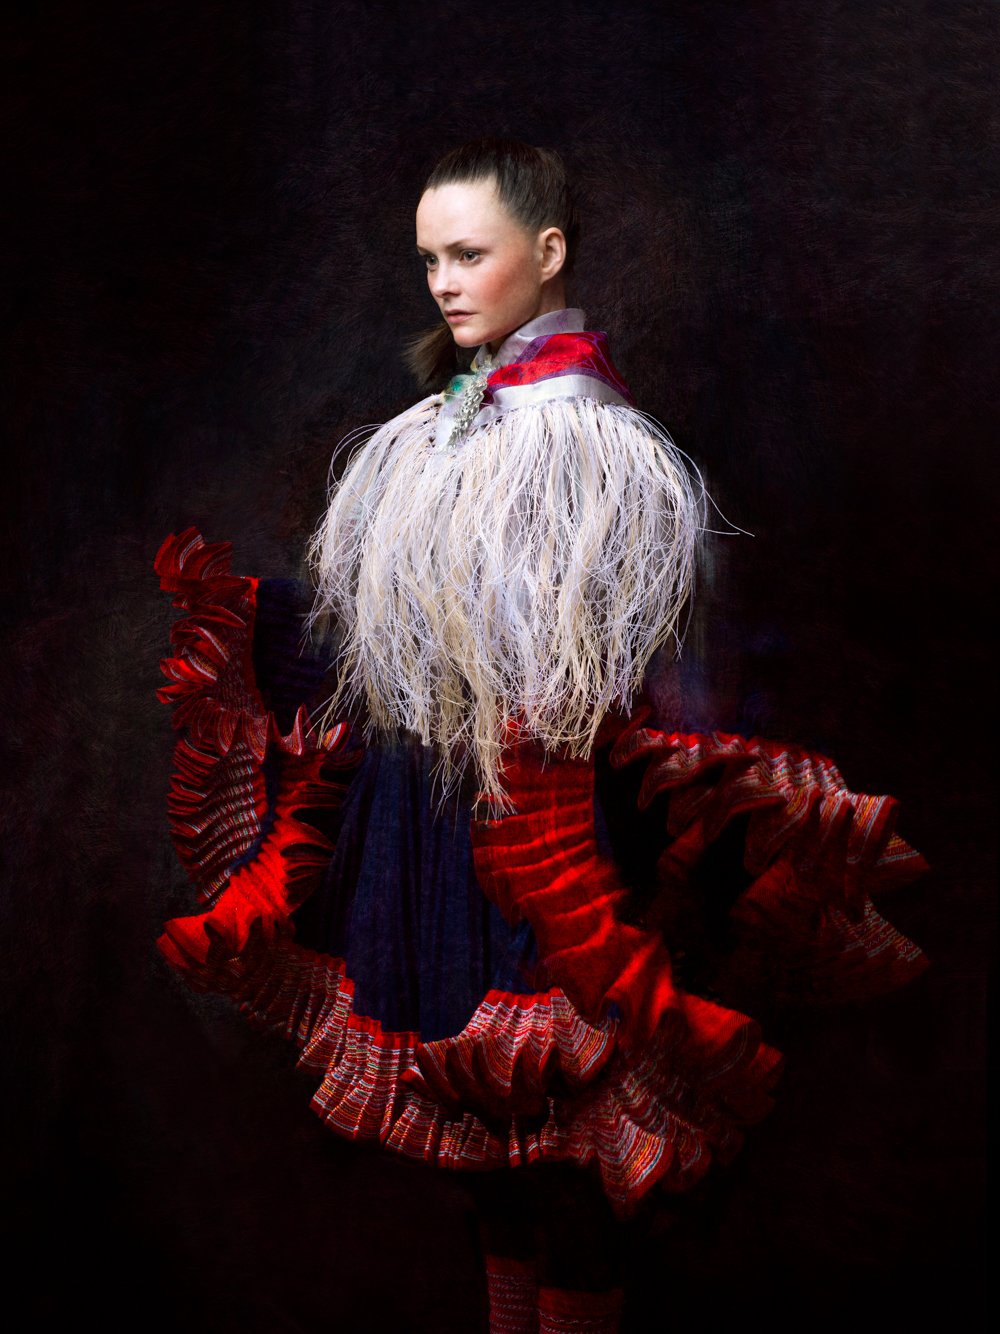 Inga Maria with the Tangled Scarf, 2016